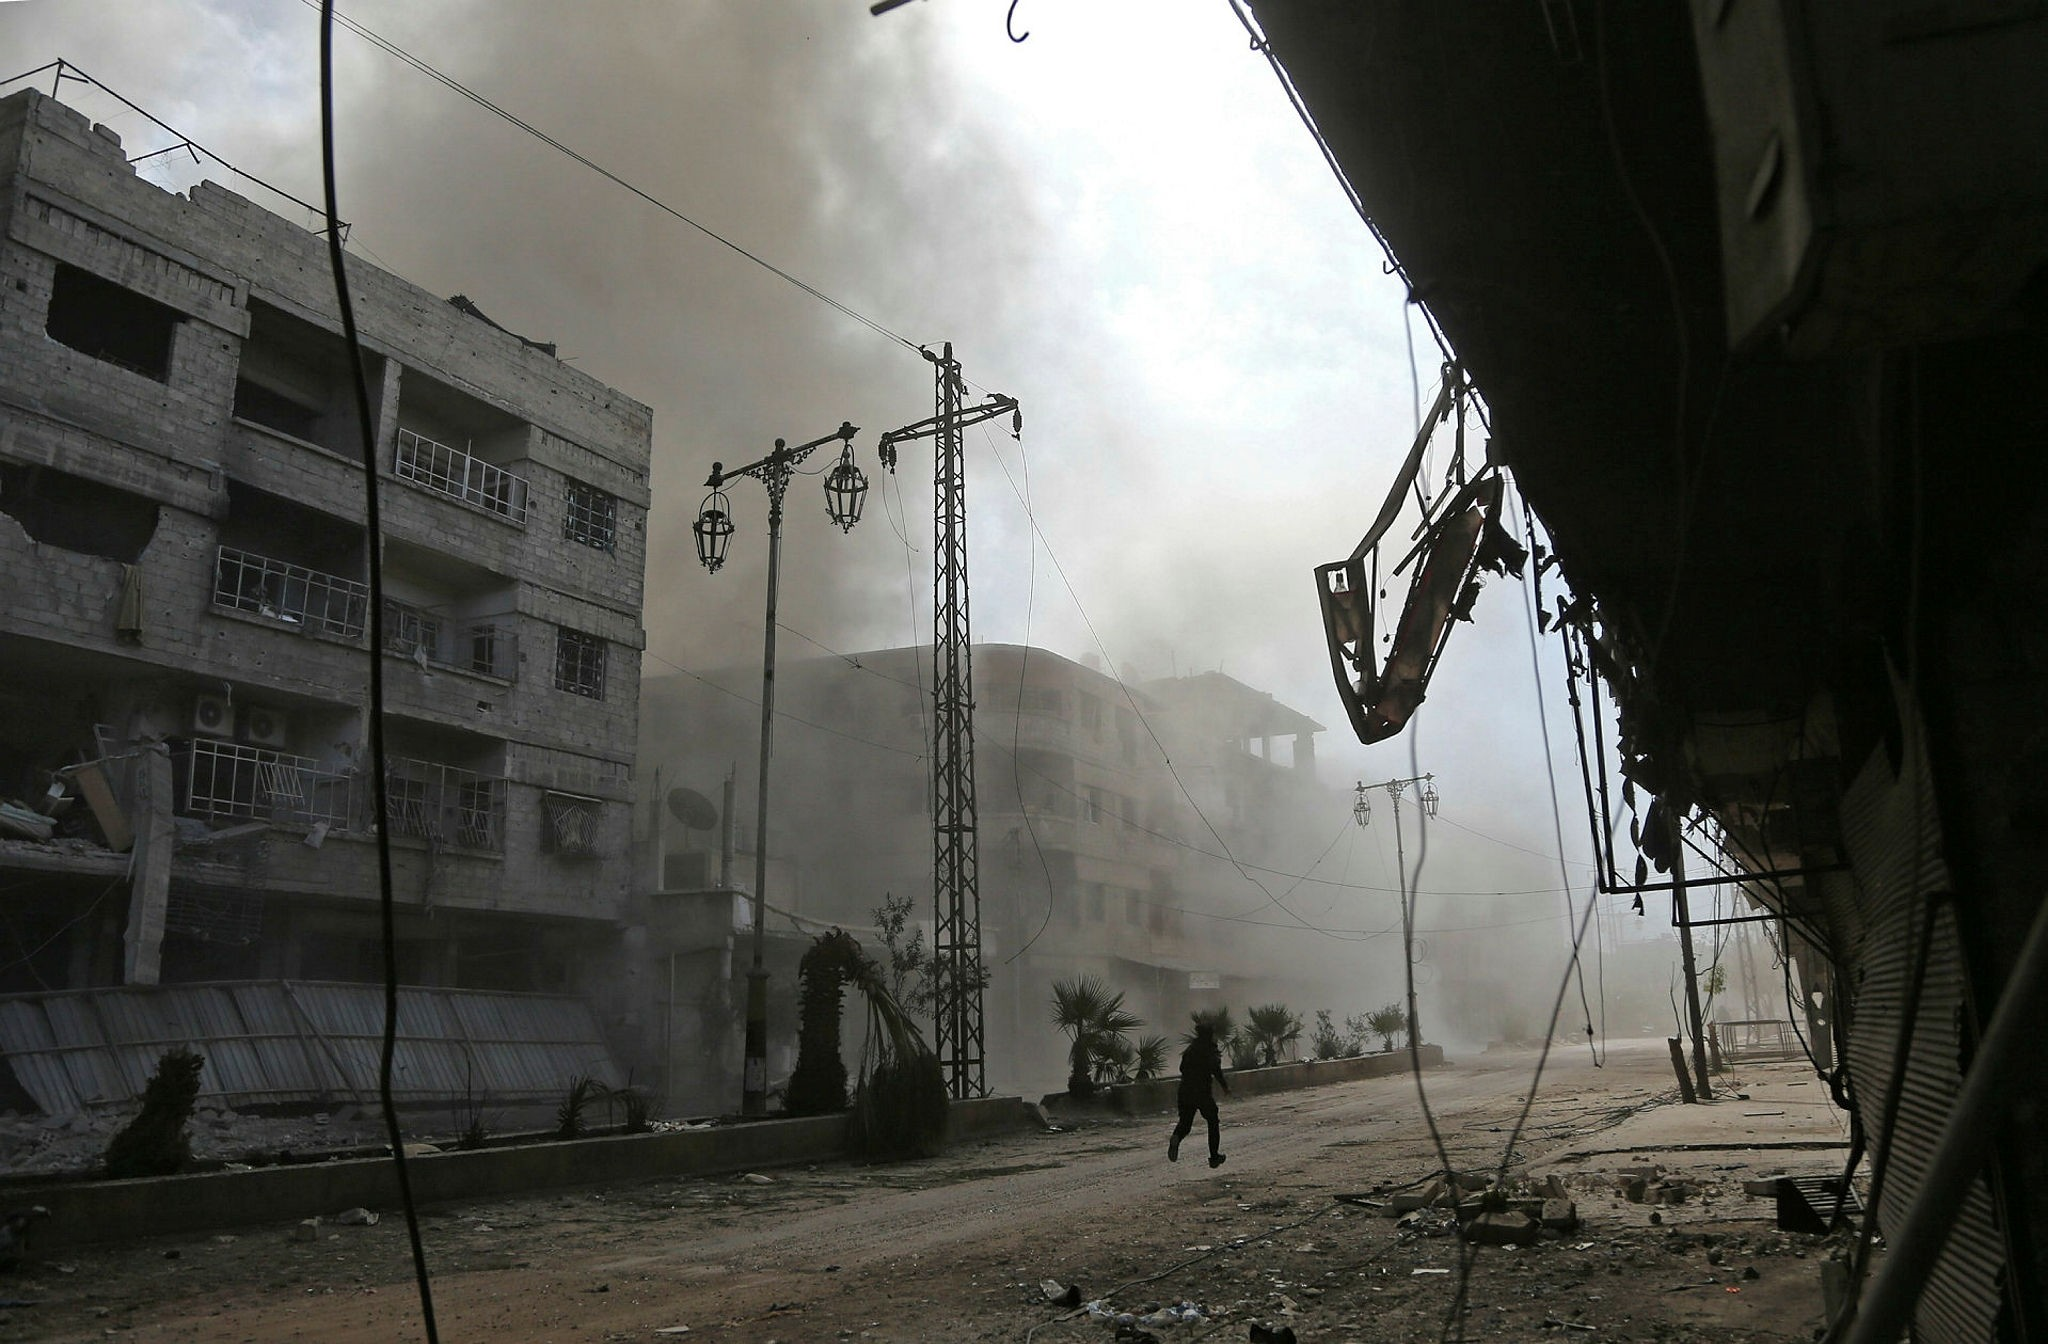 Fotoaltu0131: Smoke and dust rise after Syrian regime airstrike in the besieged Eastern Ghouta district, Feb, 21.